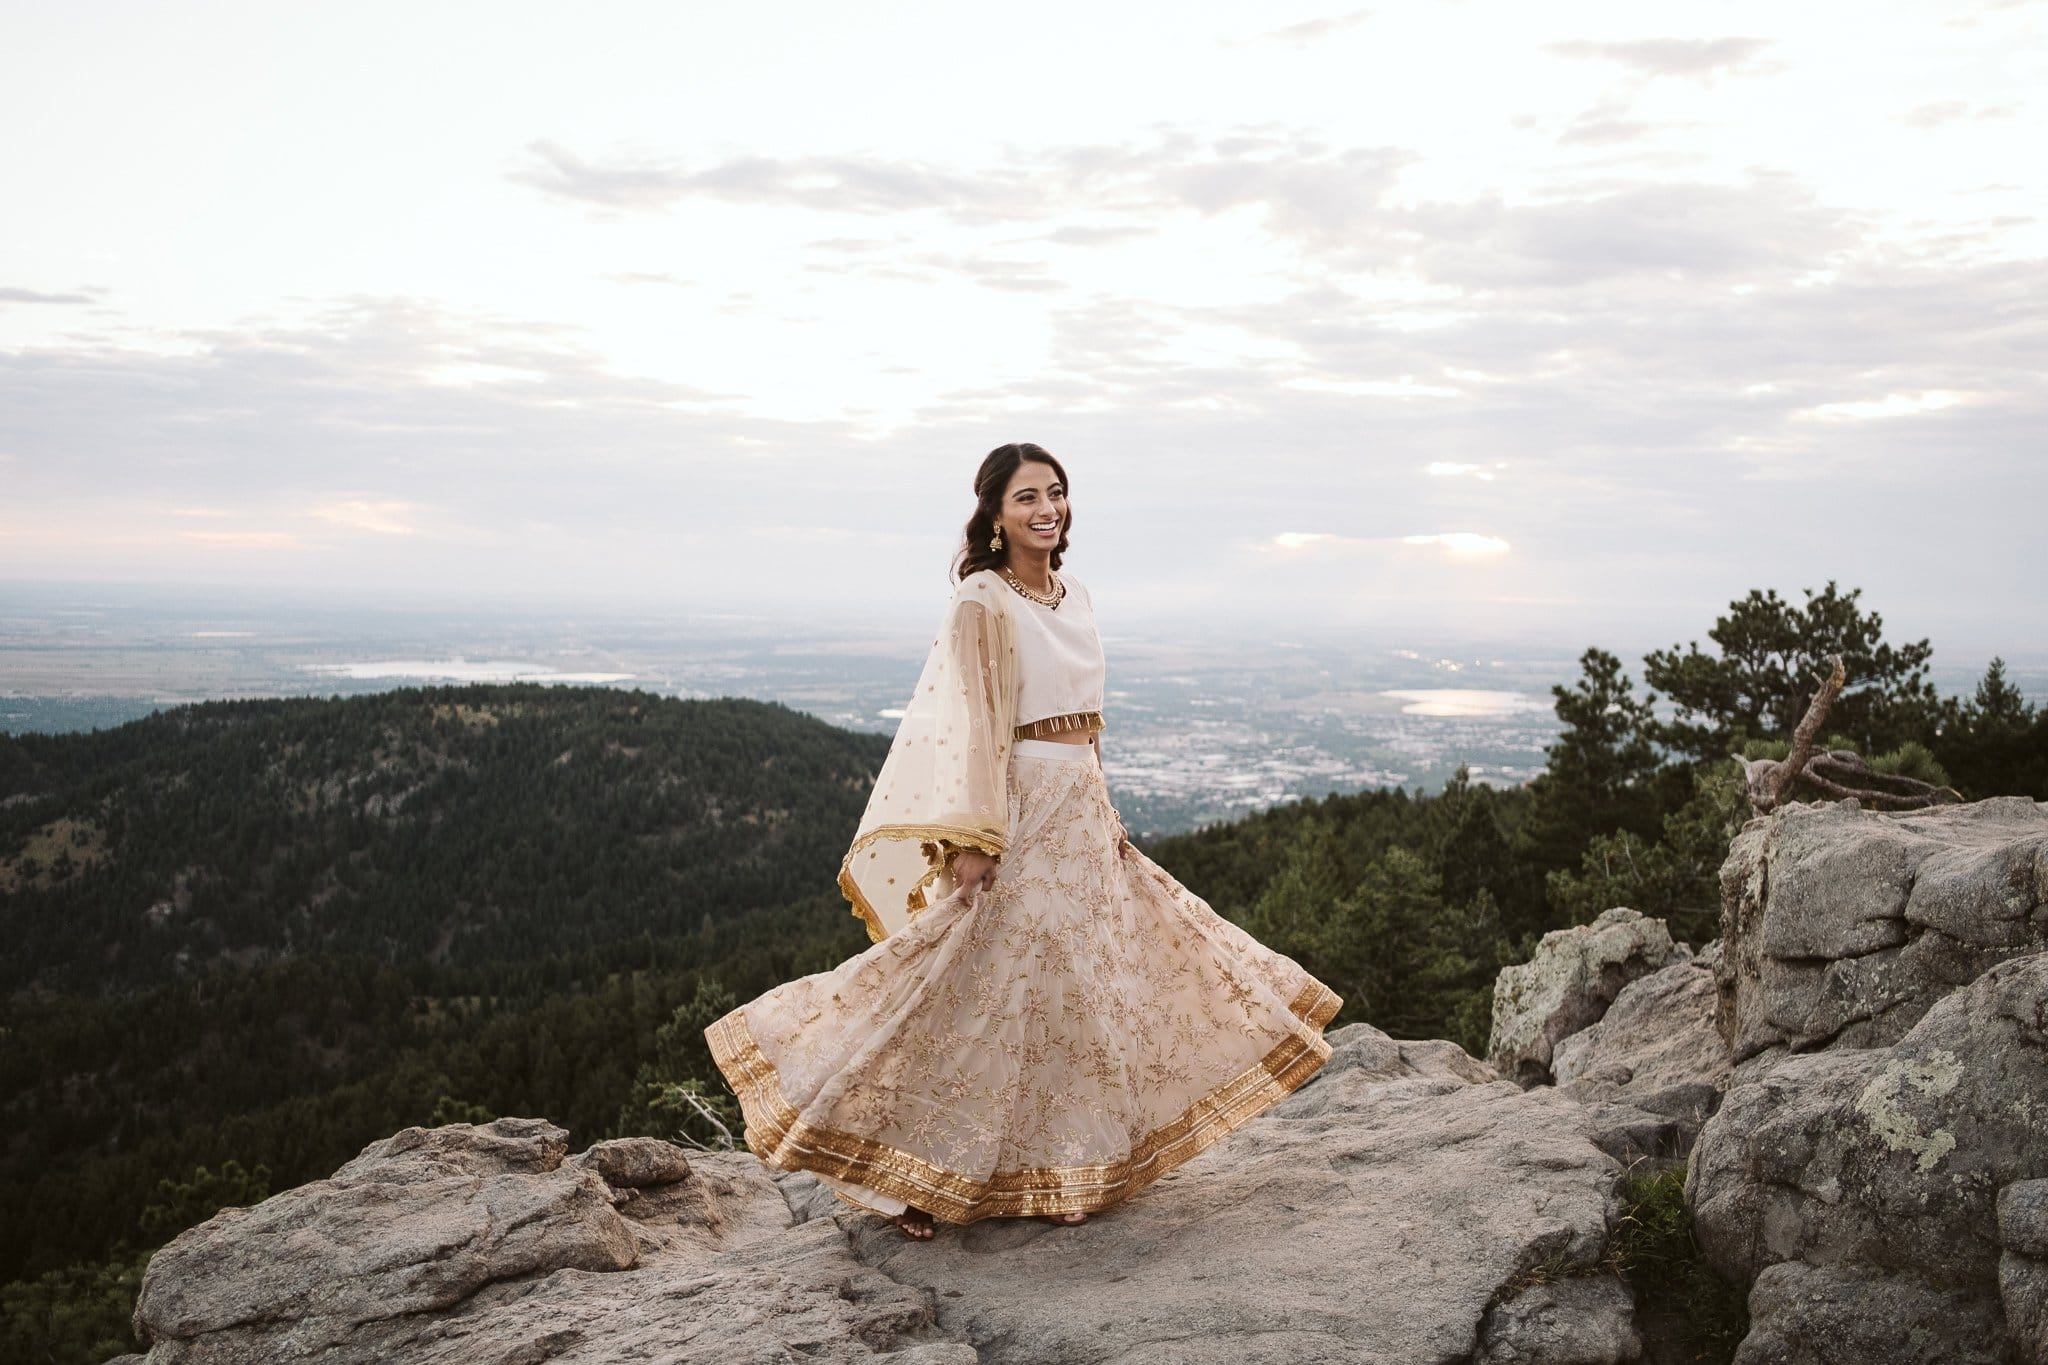 Woman twirling in Indian dress at Lost Gulch